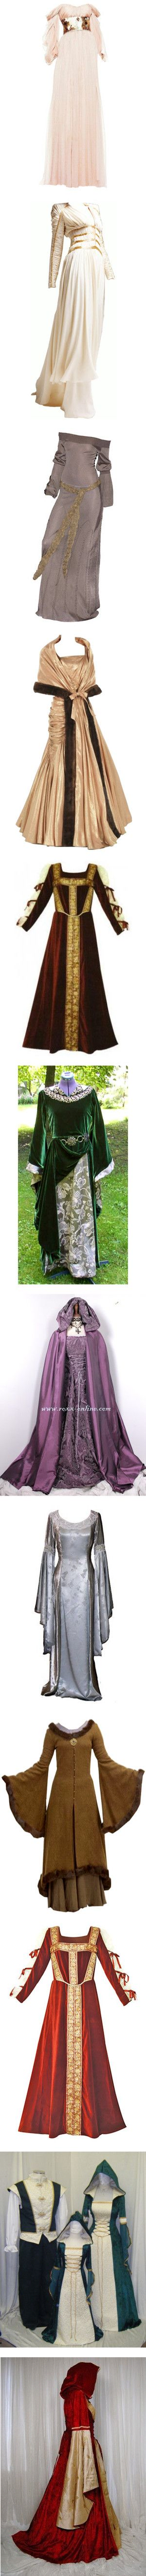 """Narnia Clothes :)"" by starstruck4ever - Game of Thrones/Legend of Zelda cosplay anyone?"